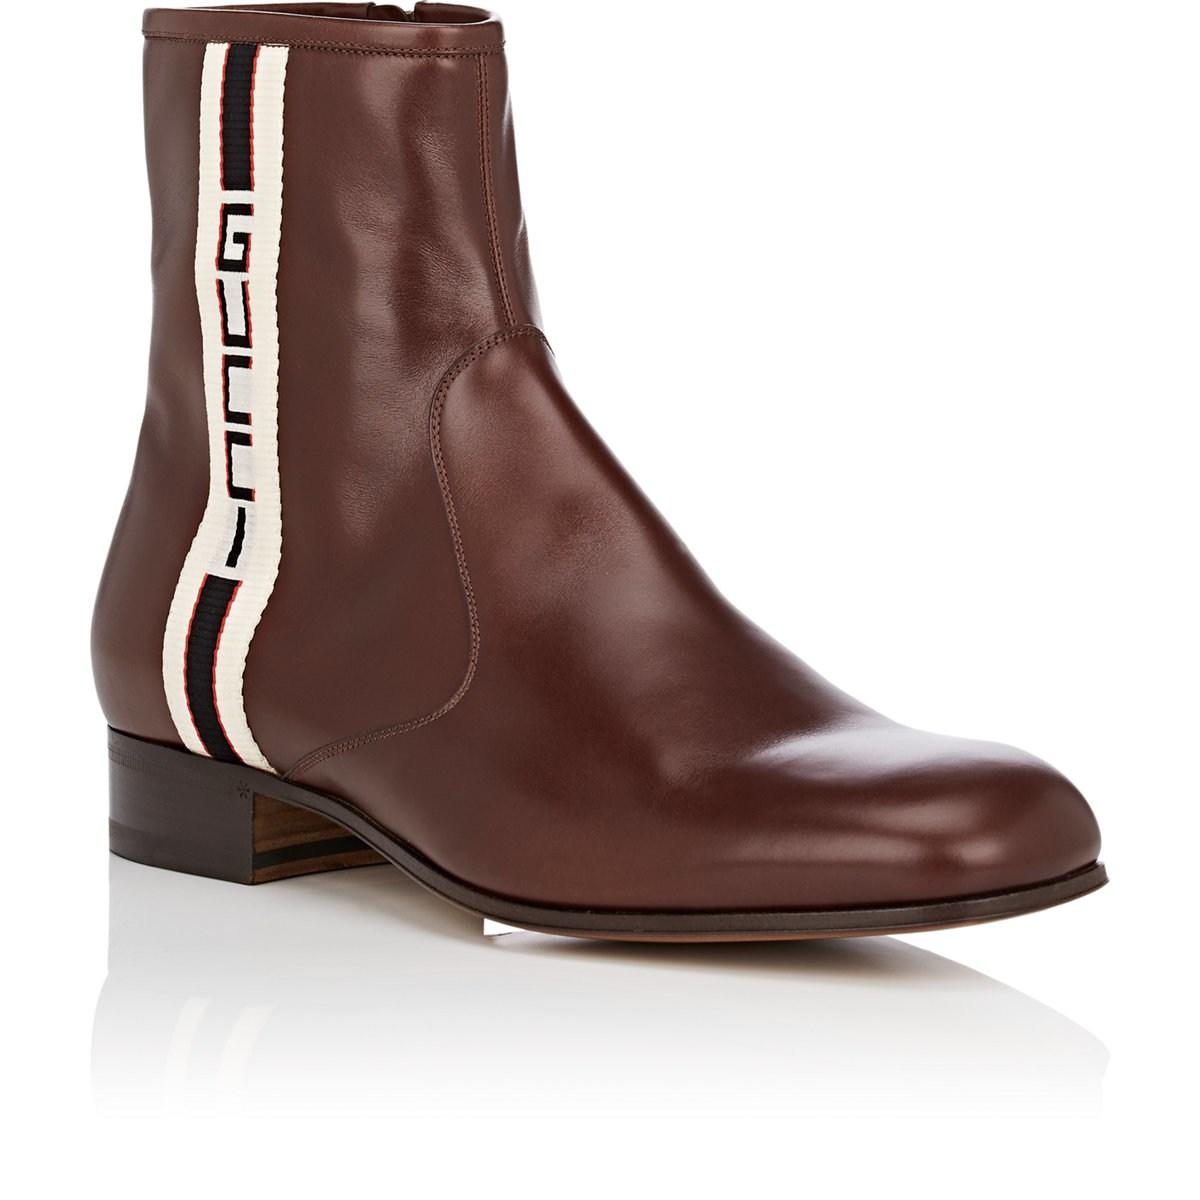 d515704bbf5 Gucci - Brown Stripe Leather Boot for Men - Lyst. View fullscreen